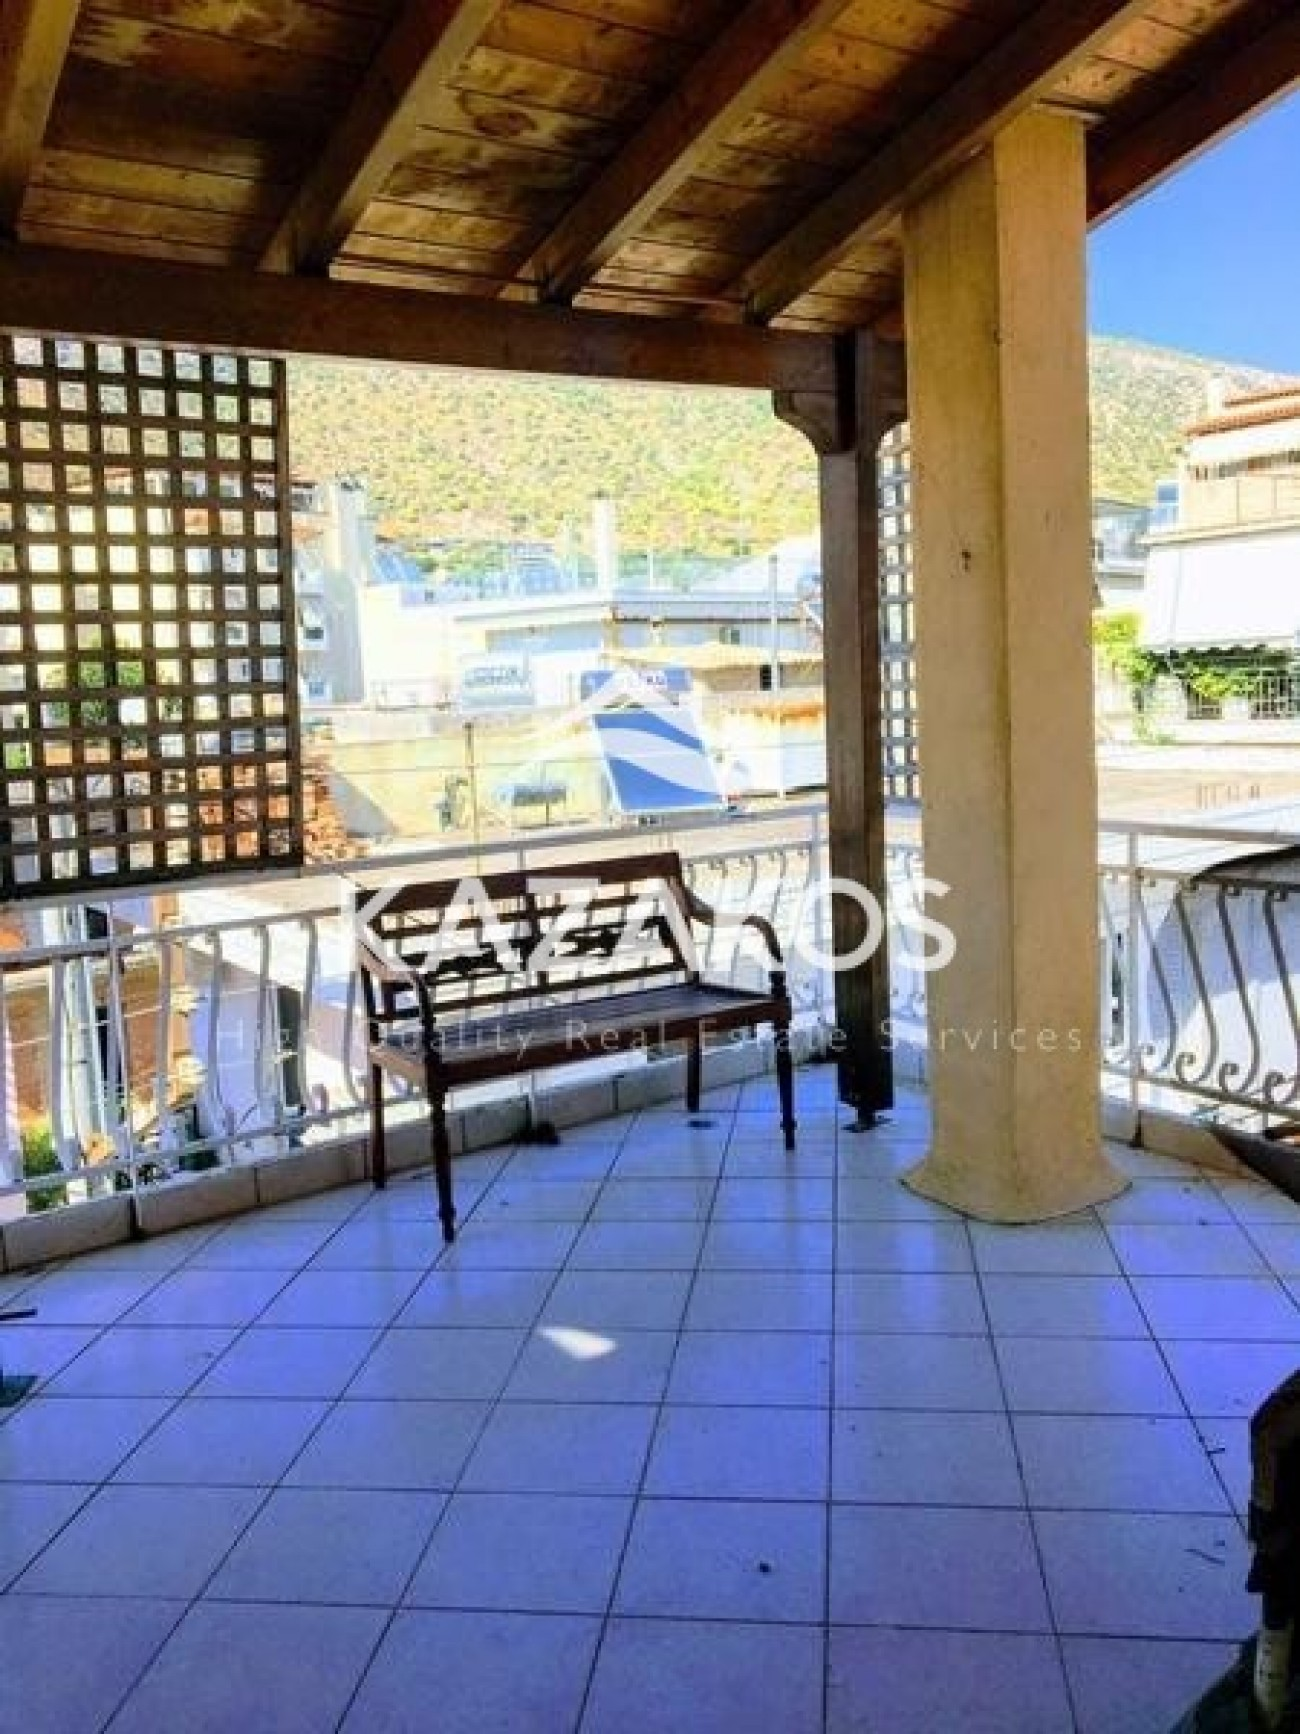 House for Sale in Central & South Region of Athens, Greece